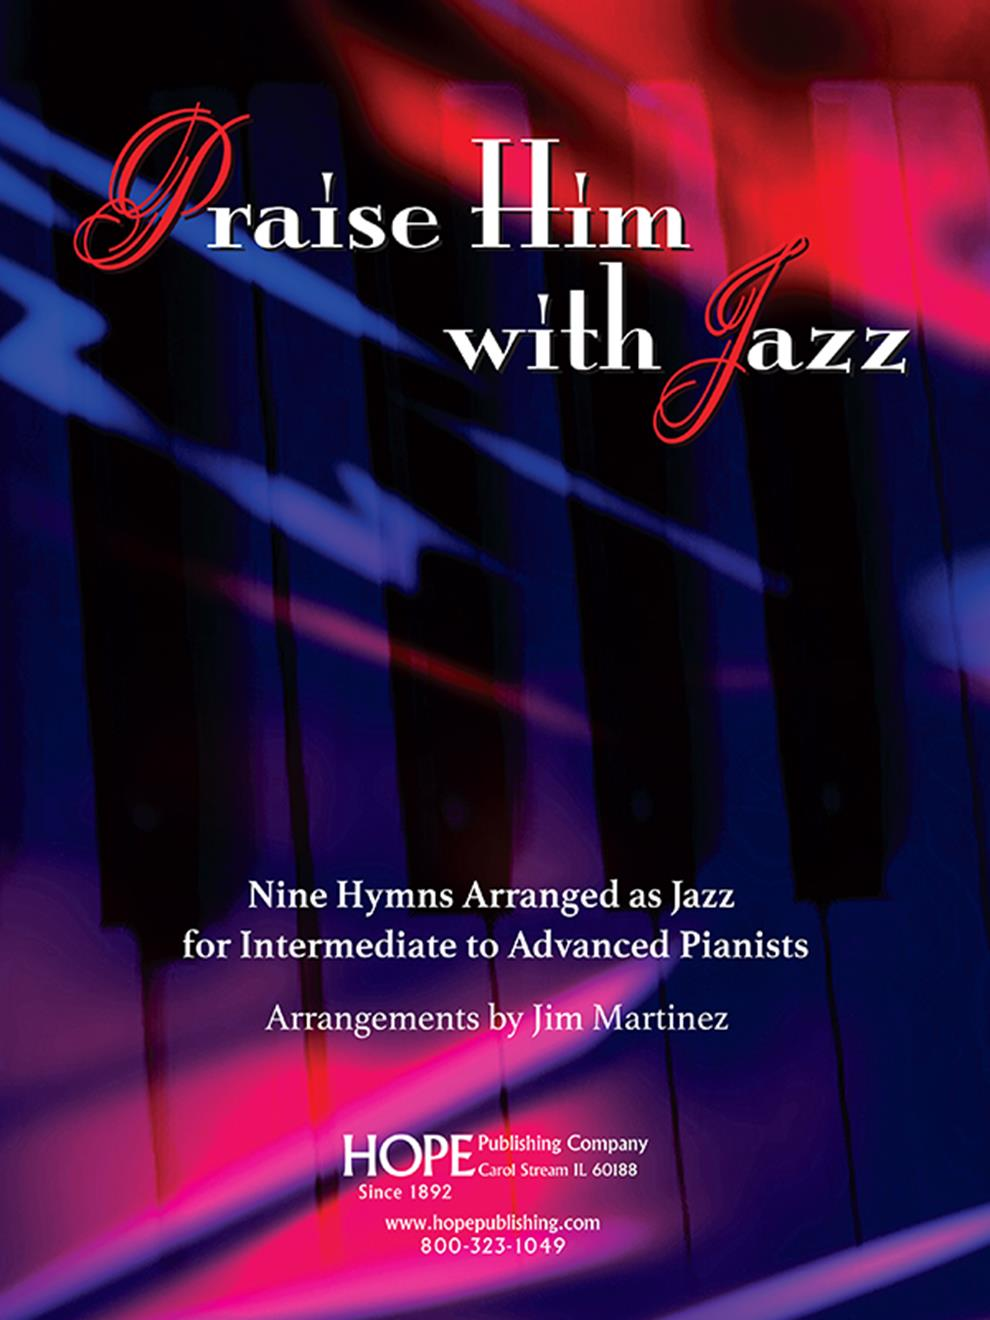 Praise Him with Jazz